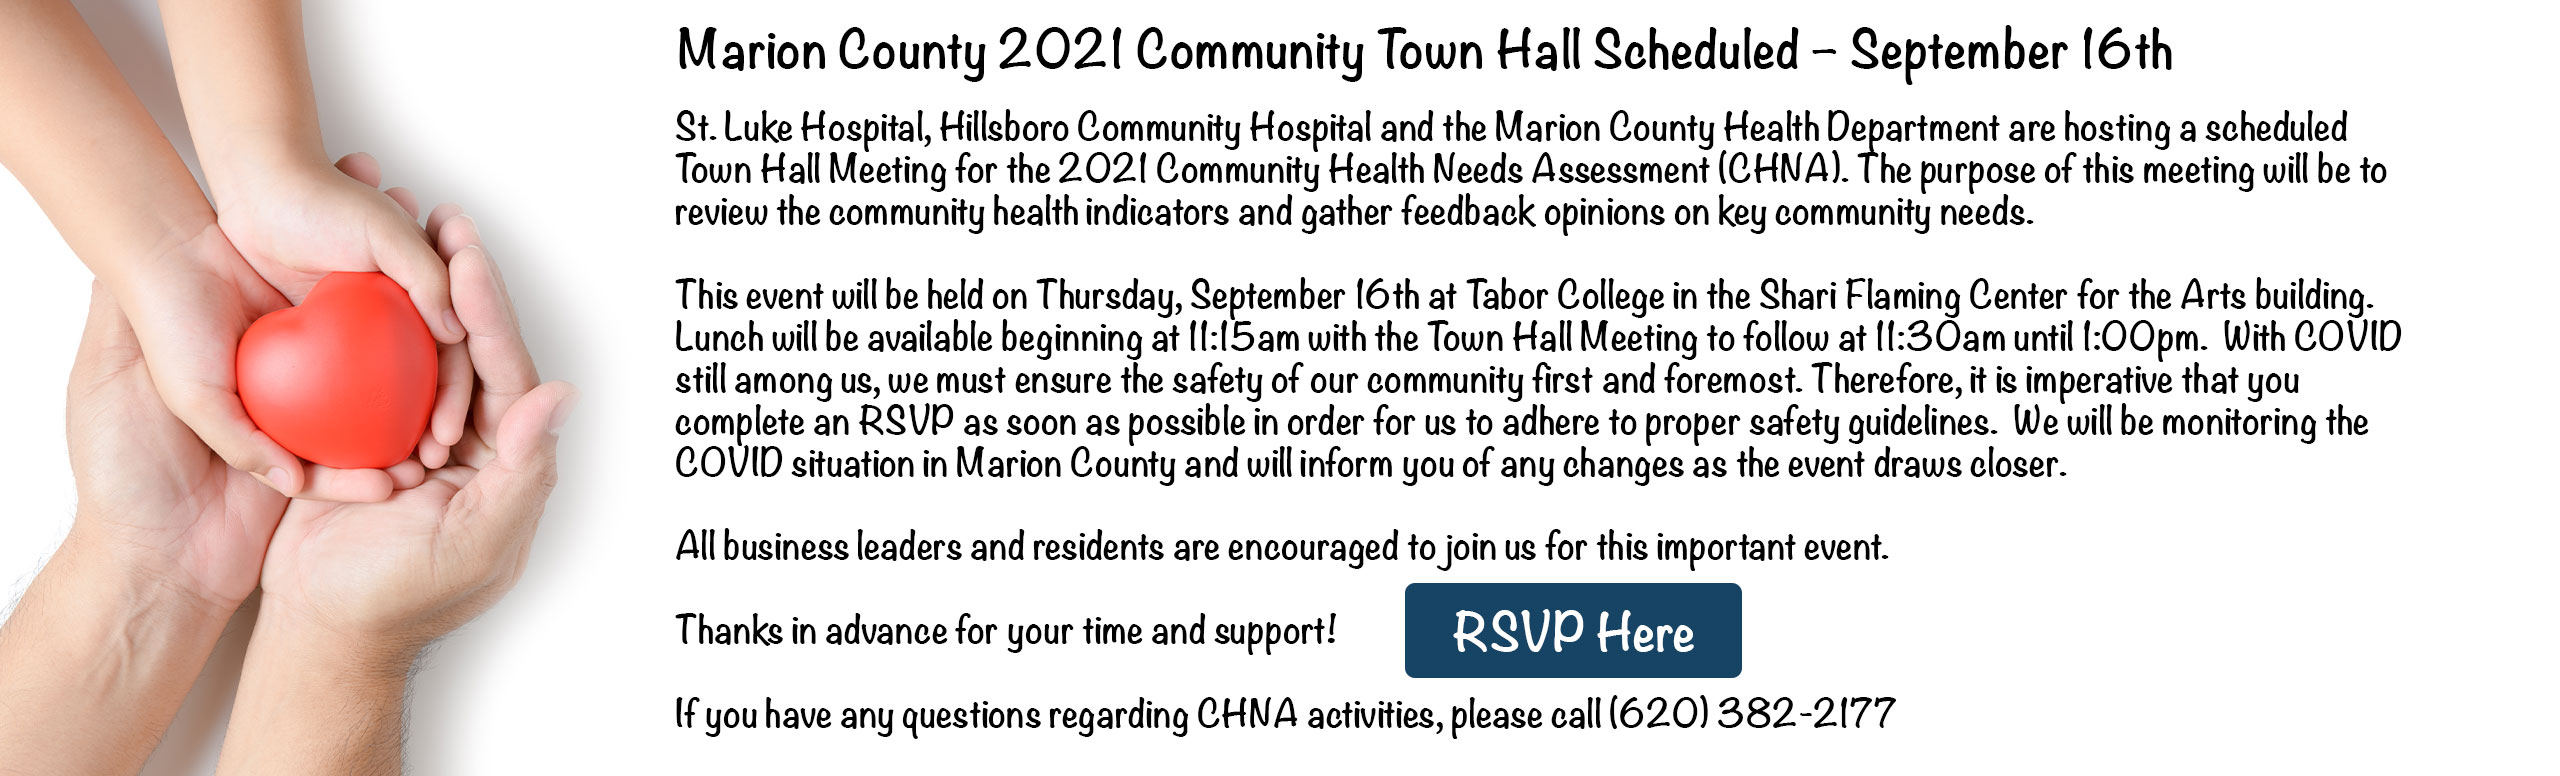 Banner picture of an adult's hands holding a child's hands that is holding a heart shaped object.  It says:  Marion County 2021 Community Town Hall Scheduled- September 16th  St. Luke Hospital, Hillsboro Community Hospital and the Marion County Health Department are hosting a scheduled Town Hall Meeting for the 2021 Community Health Needs Assessment (CHNA). The purpose of this meeting will be to review the community health indicators and gather feedback opinions on key community needs.  This event will be held on Thursday, September 16th at the Tabor College in the Shari Flaming Center for the Arts building. Lunch will be available beginning at 11:15am with the Town Hall Meeting to follow at 11:30am until 1:00 pm. With COVID still among us, we must ensure the safety of our community first and foremost. Therefore, it is imperative that you complete an RSVP as soon as possible in order for us to adhere to proper safety guidelines. We will be monitoring the COVID situation in Marion County and will inform you of any changes as the event draws closer.  All business leaders and residents are encouraged to join this important event.  Thanks in advance for your time and support!  If you have any questions regarding CHNA activities, please call (620)382-2177  (box that says)  [RSVP Here]